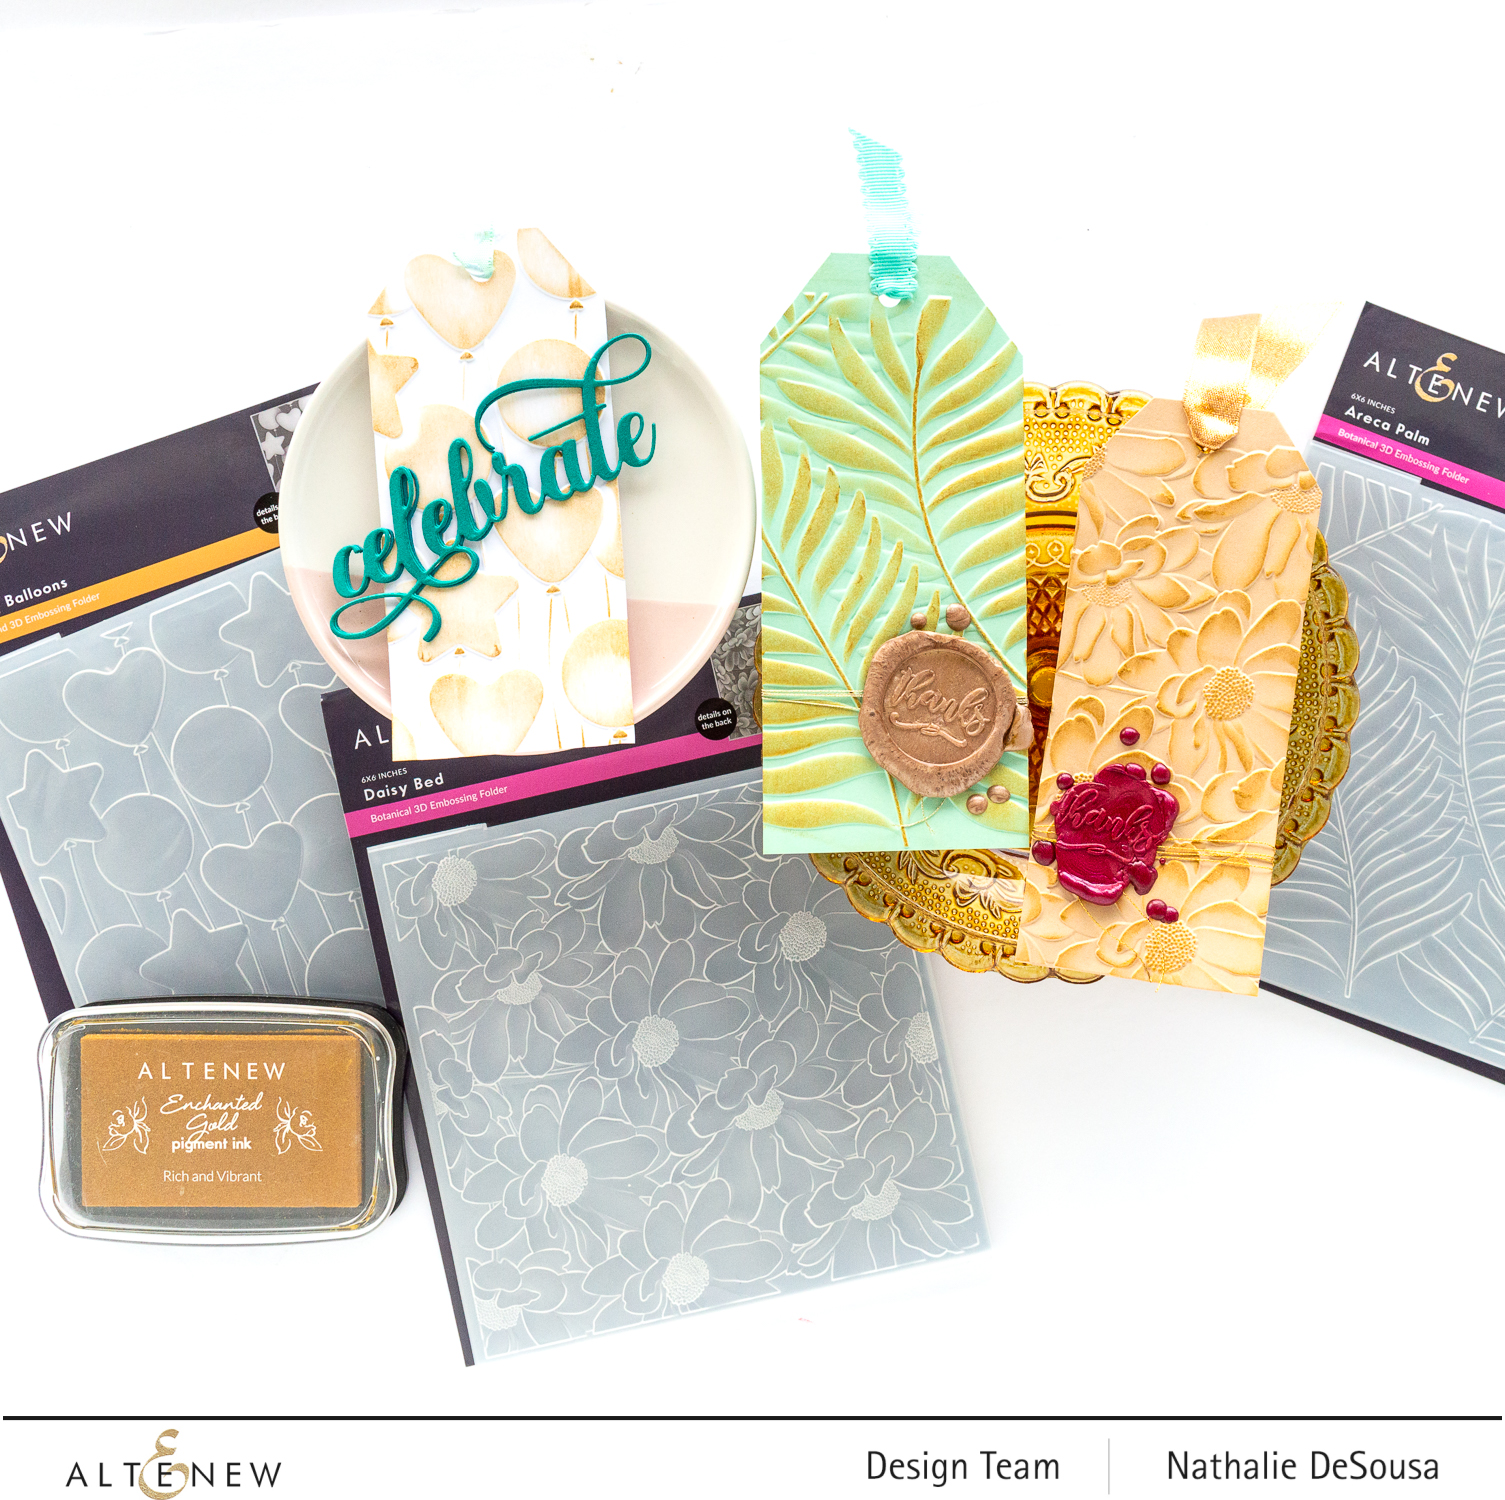 @altenew 3D embossing folders highlight by Nathalie DeSousa